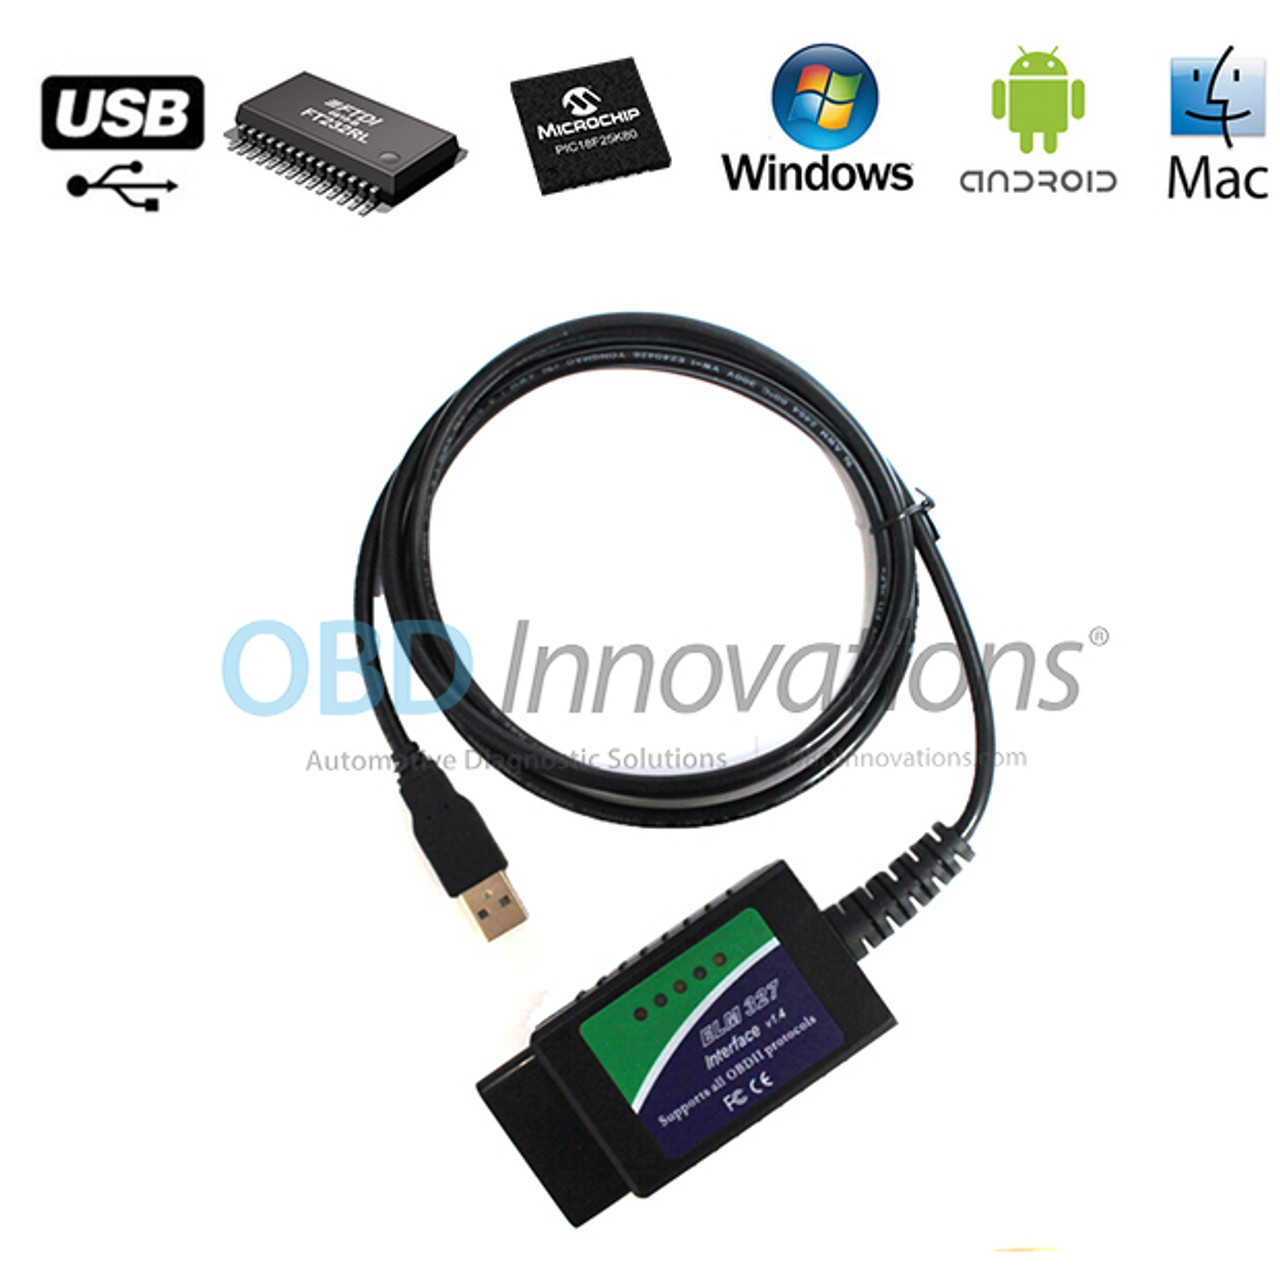 ELM327 OBD2 USB Diagnostic Scanner Cable with FTDI FT232RL Chip V1 4